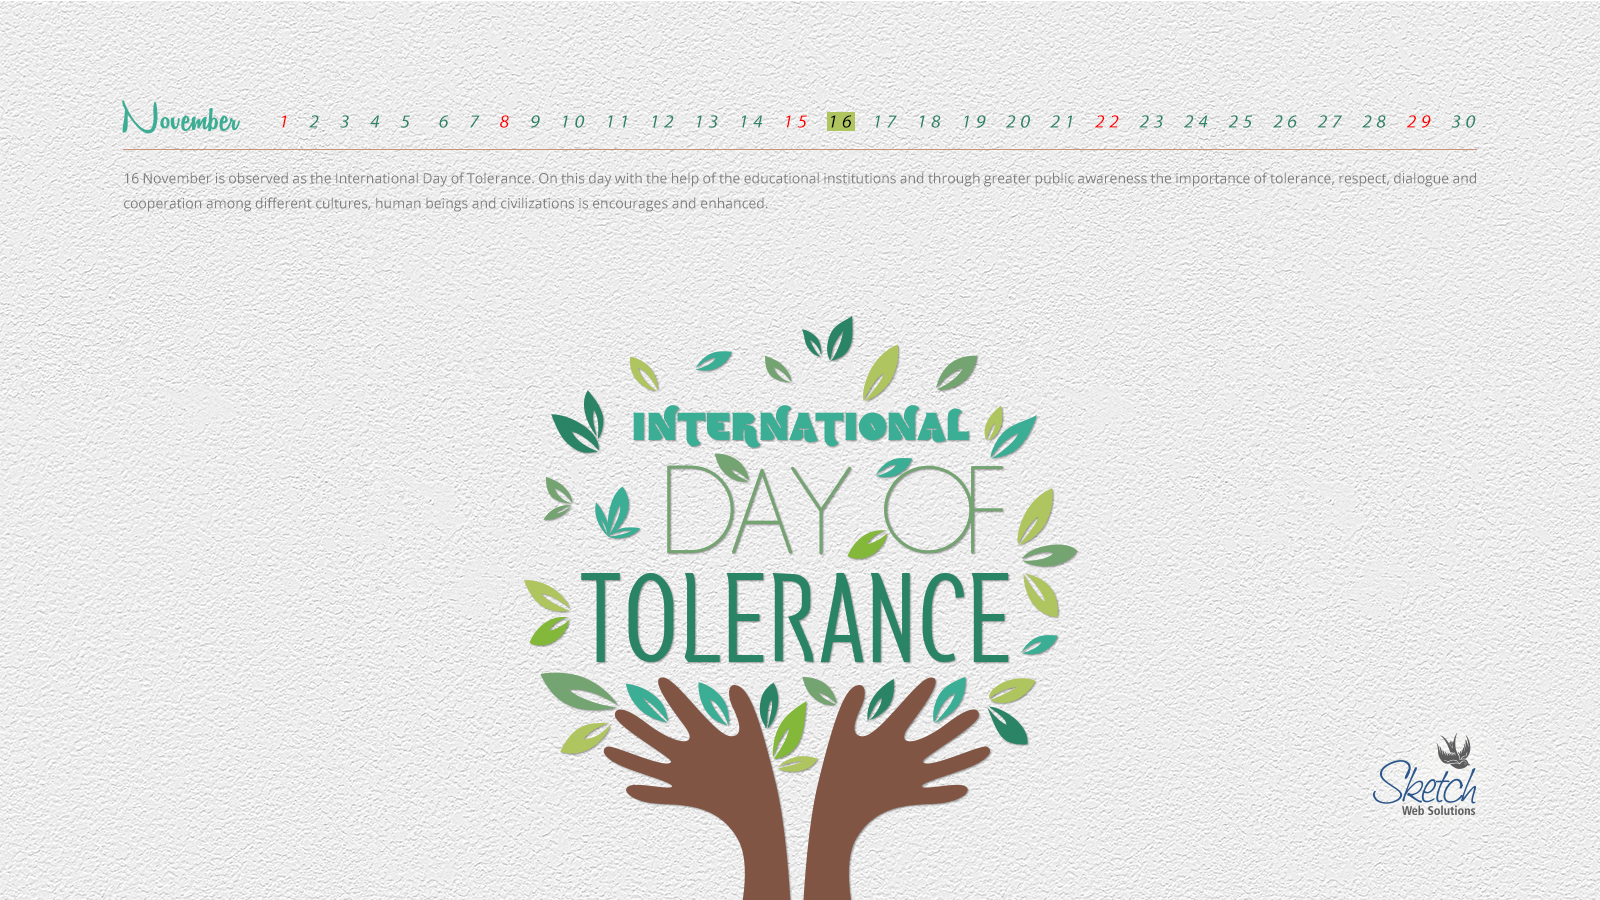 International Day of Tolerance